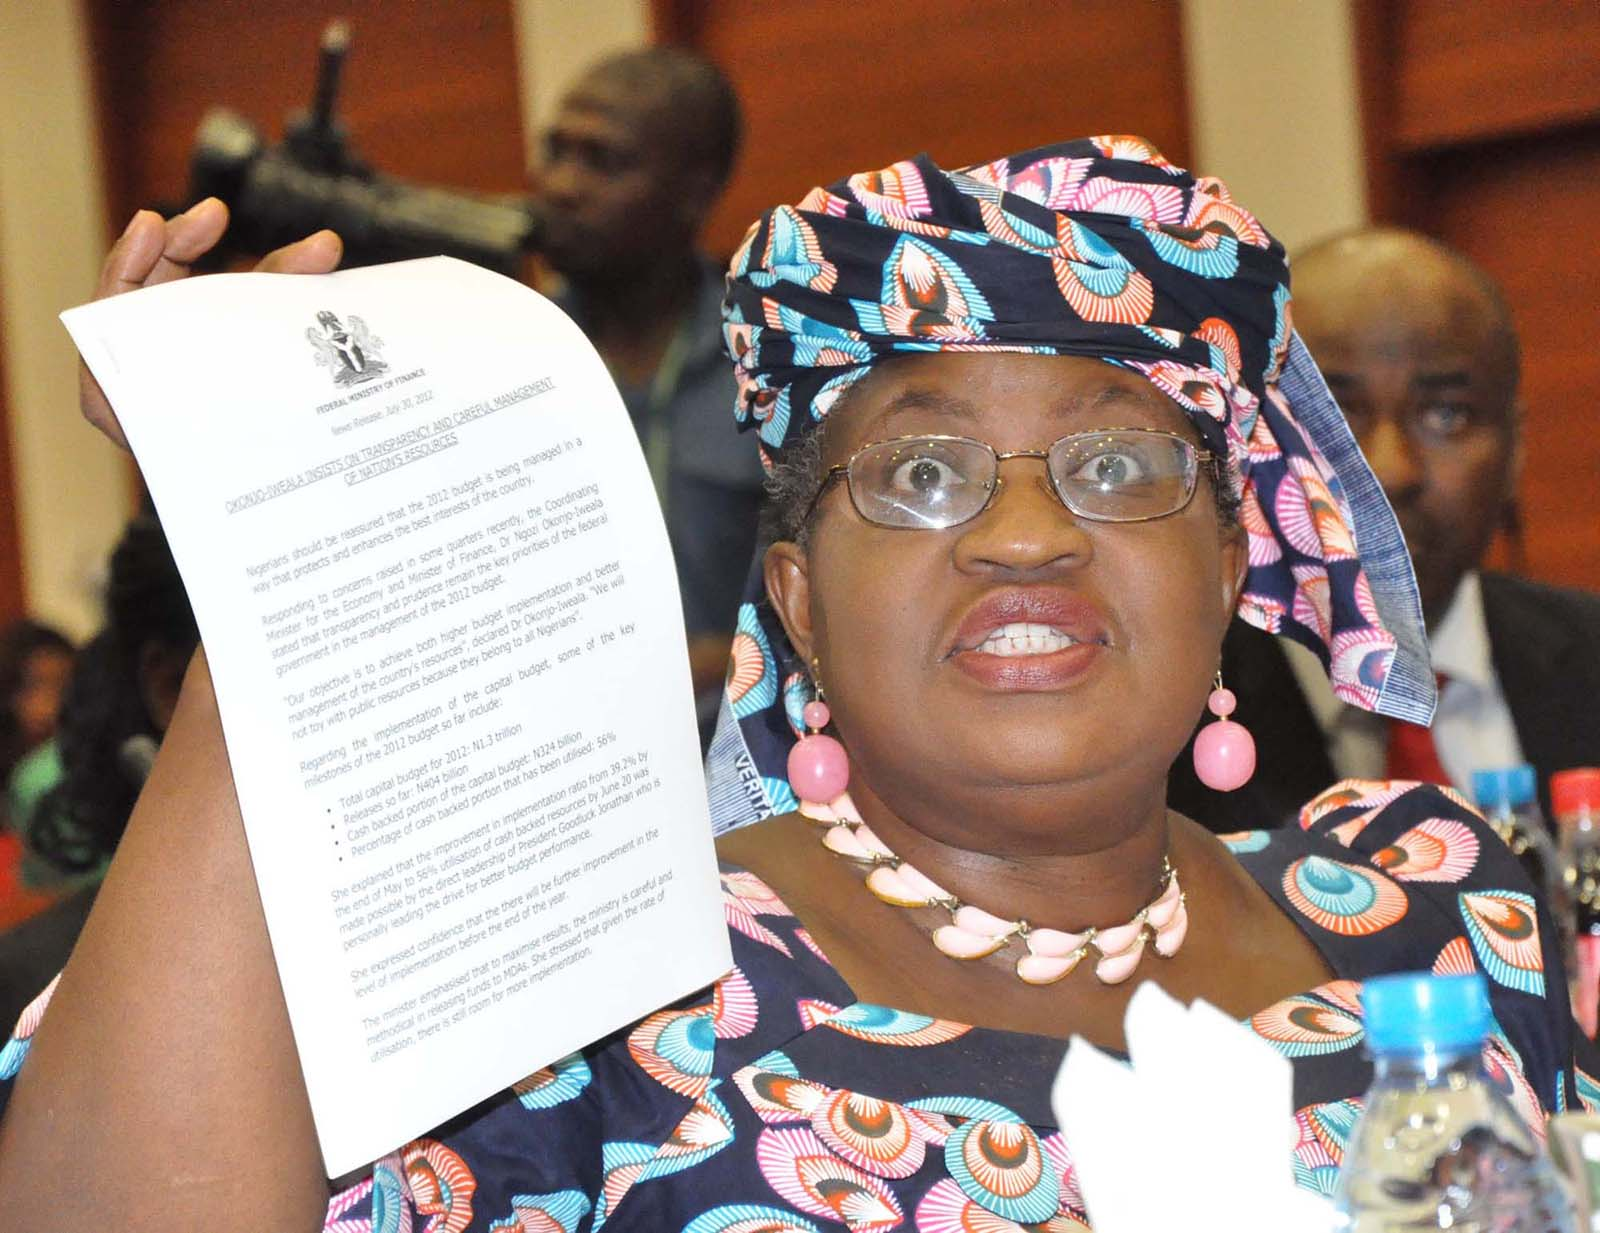 PIC 23. MINISTER OF FINANCE,  DR NGOZI OKONJO-IWEALA, DISPLAYING  A DOCUMENT AT THE JOINT  SENATE COMMITTEE ON APPROPRIATION AND FINANCE INTERACTIVE SESSION ON THE  IMPLEMENTATION OF 2012 BUDGET IN ABUJA ON THURSDAY (2/8/12).